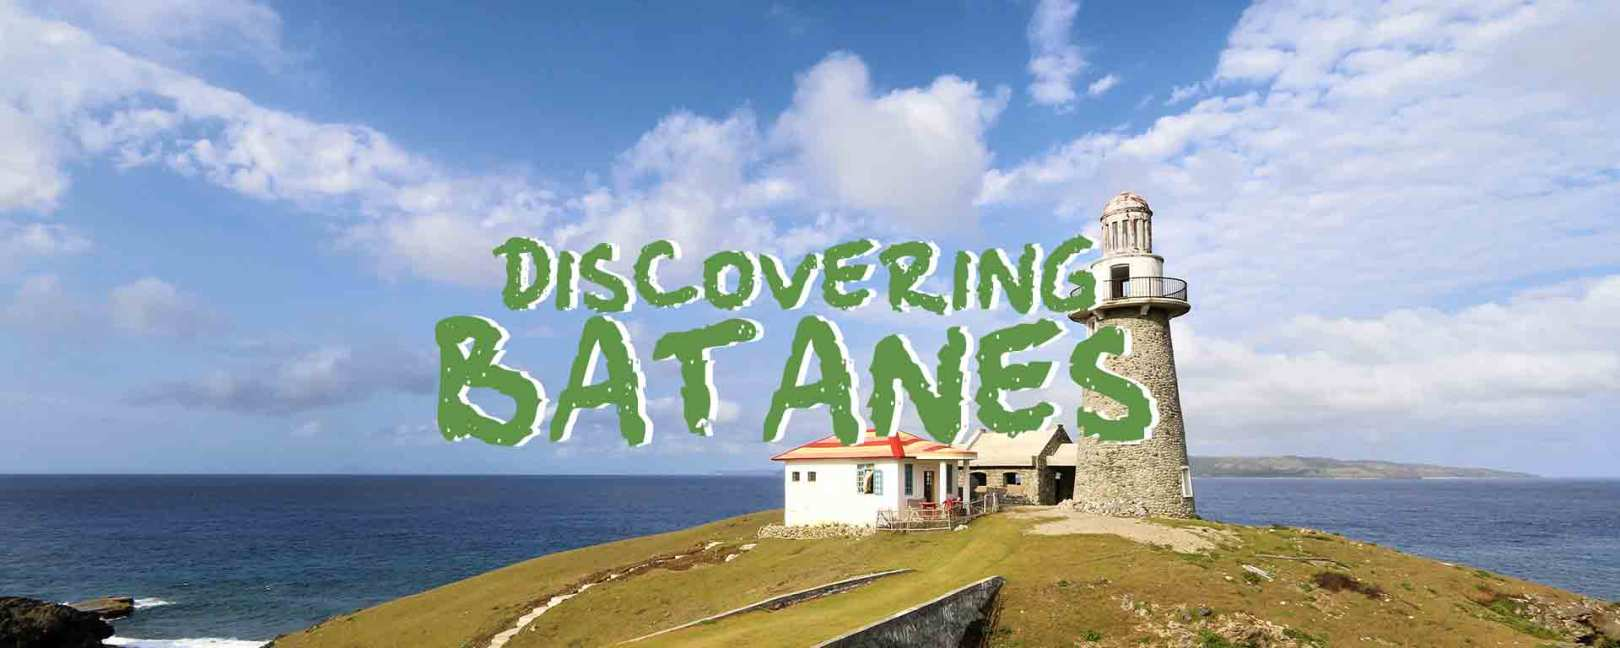 discovering-Batanes-2019-tours